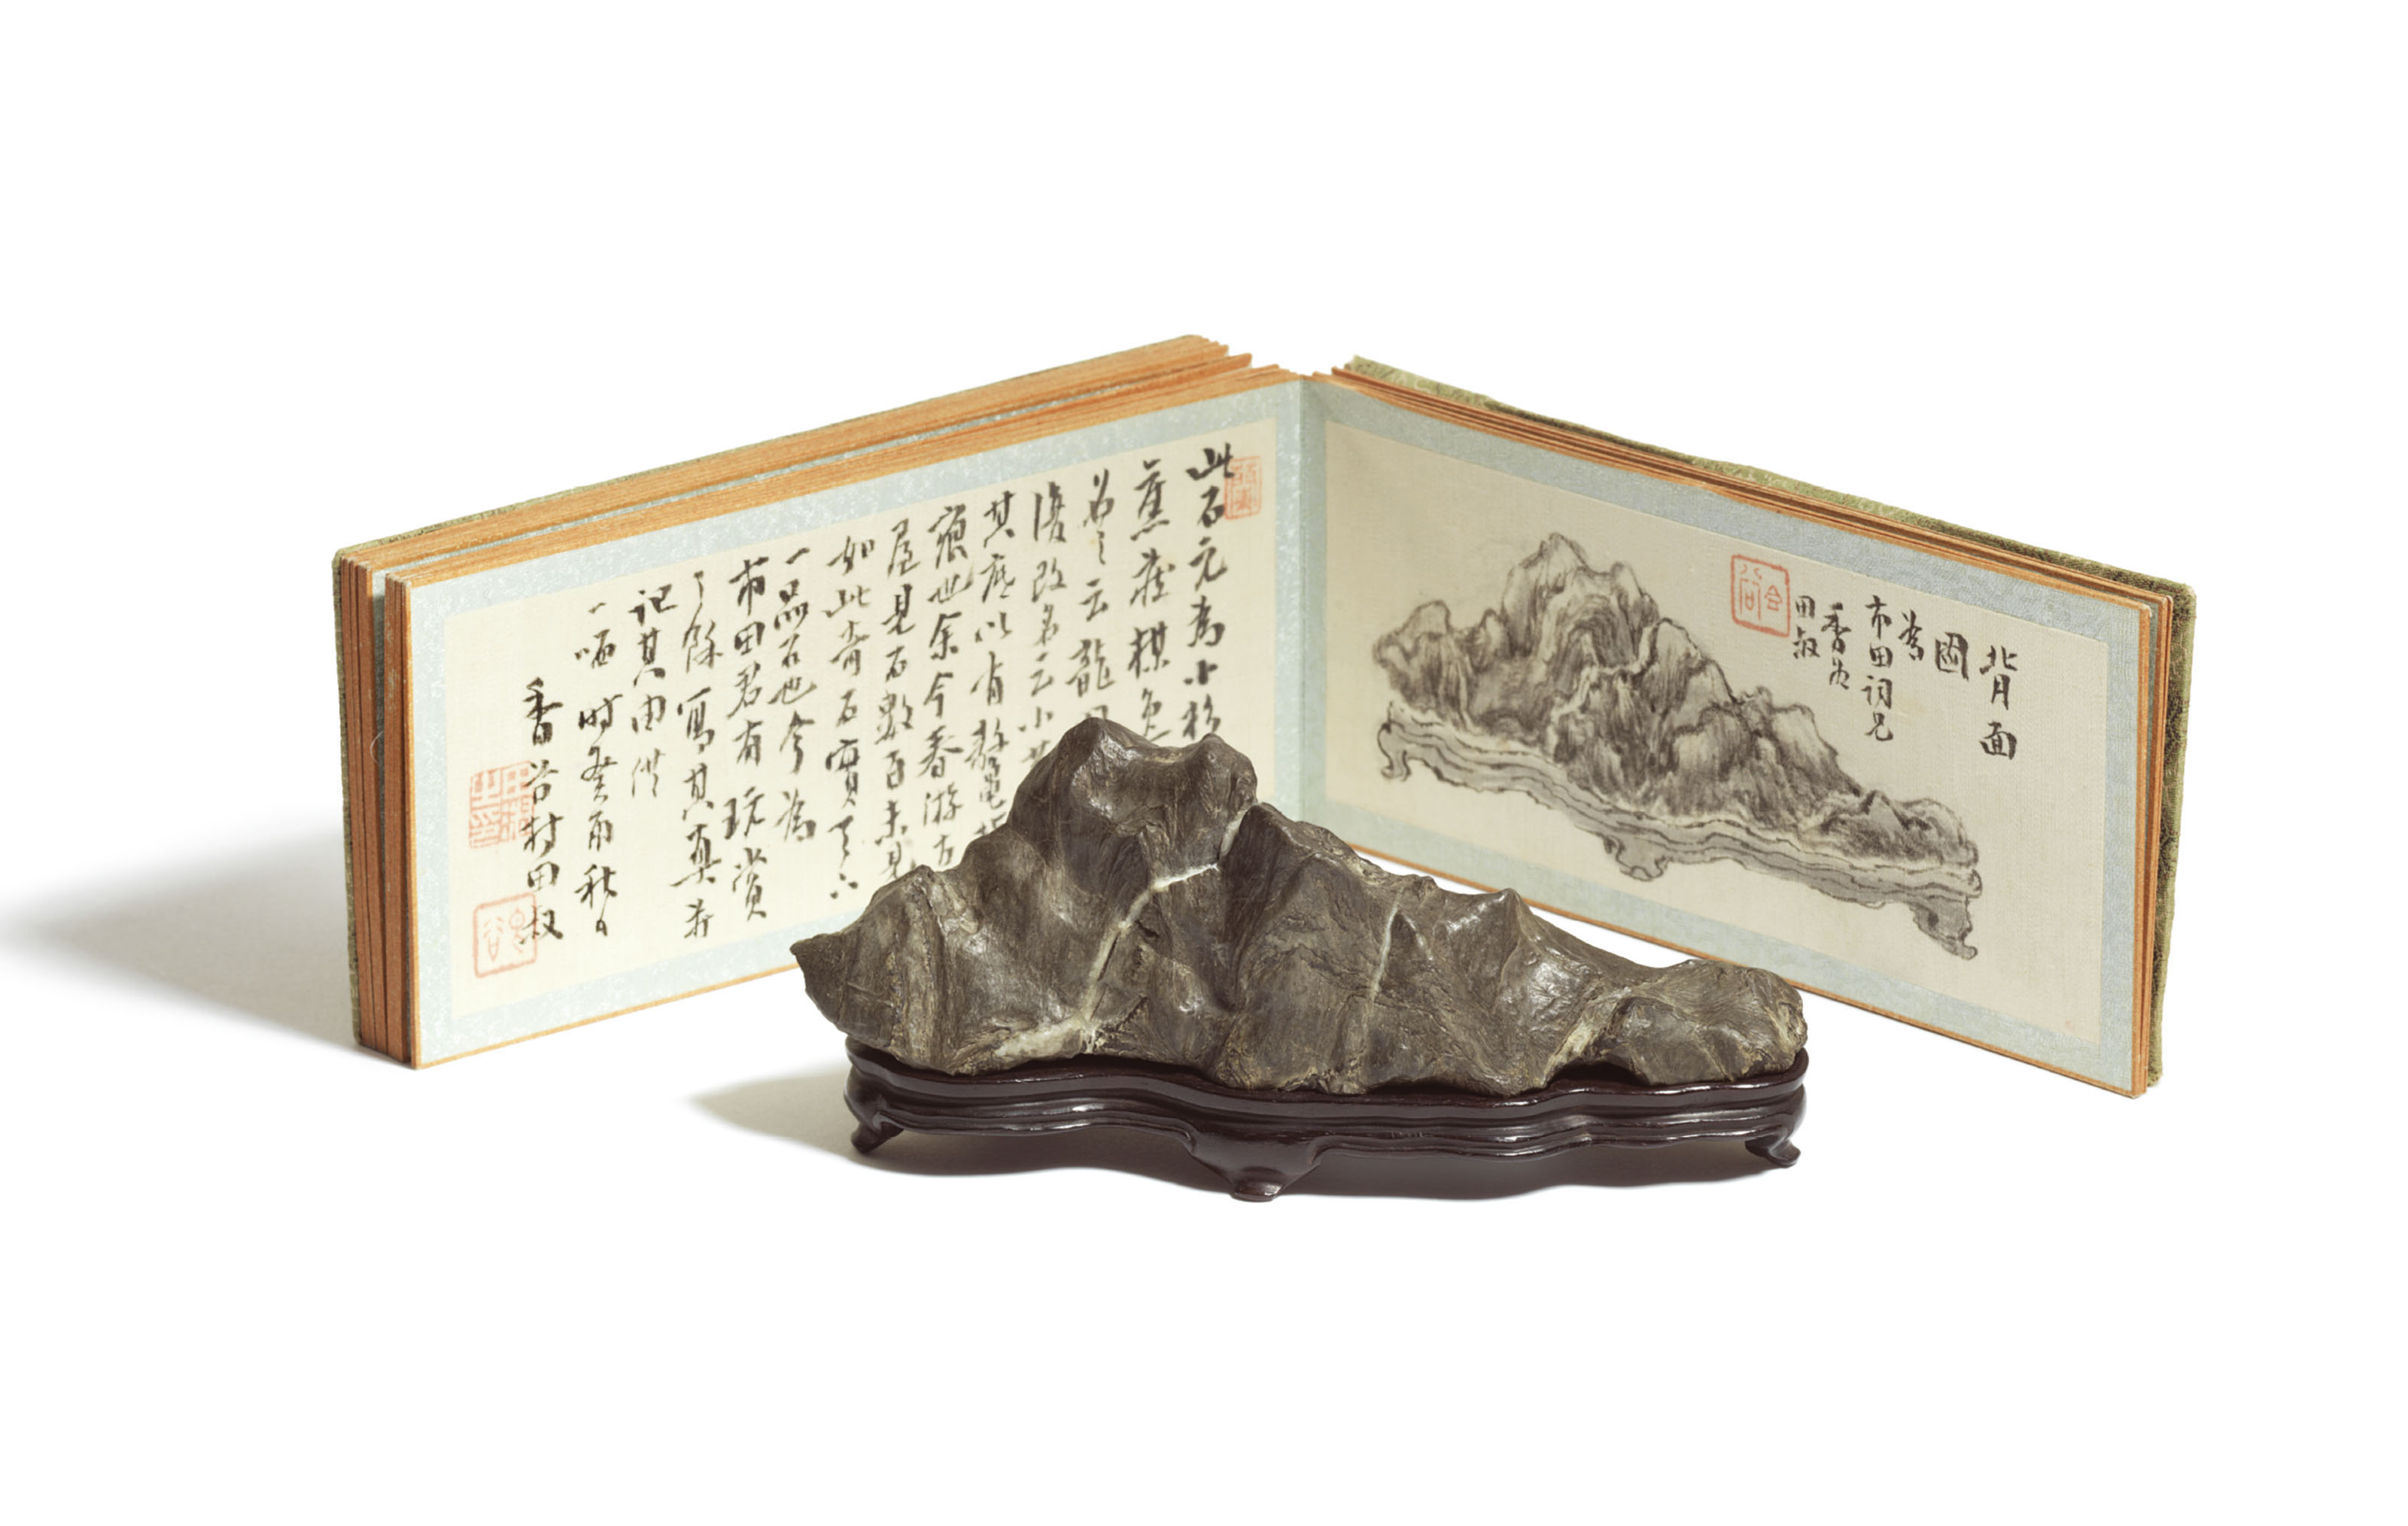 A SMALL JAPANESE FURUYAISHI ROCK MOUNTAIN ACCOMPANIED WITH A MOUNTED ALBUM OF COMMENTARIES BY VARIOUS CONNOISSEURS